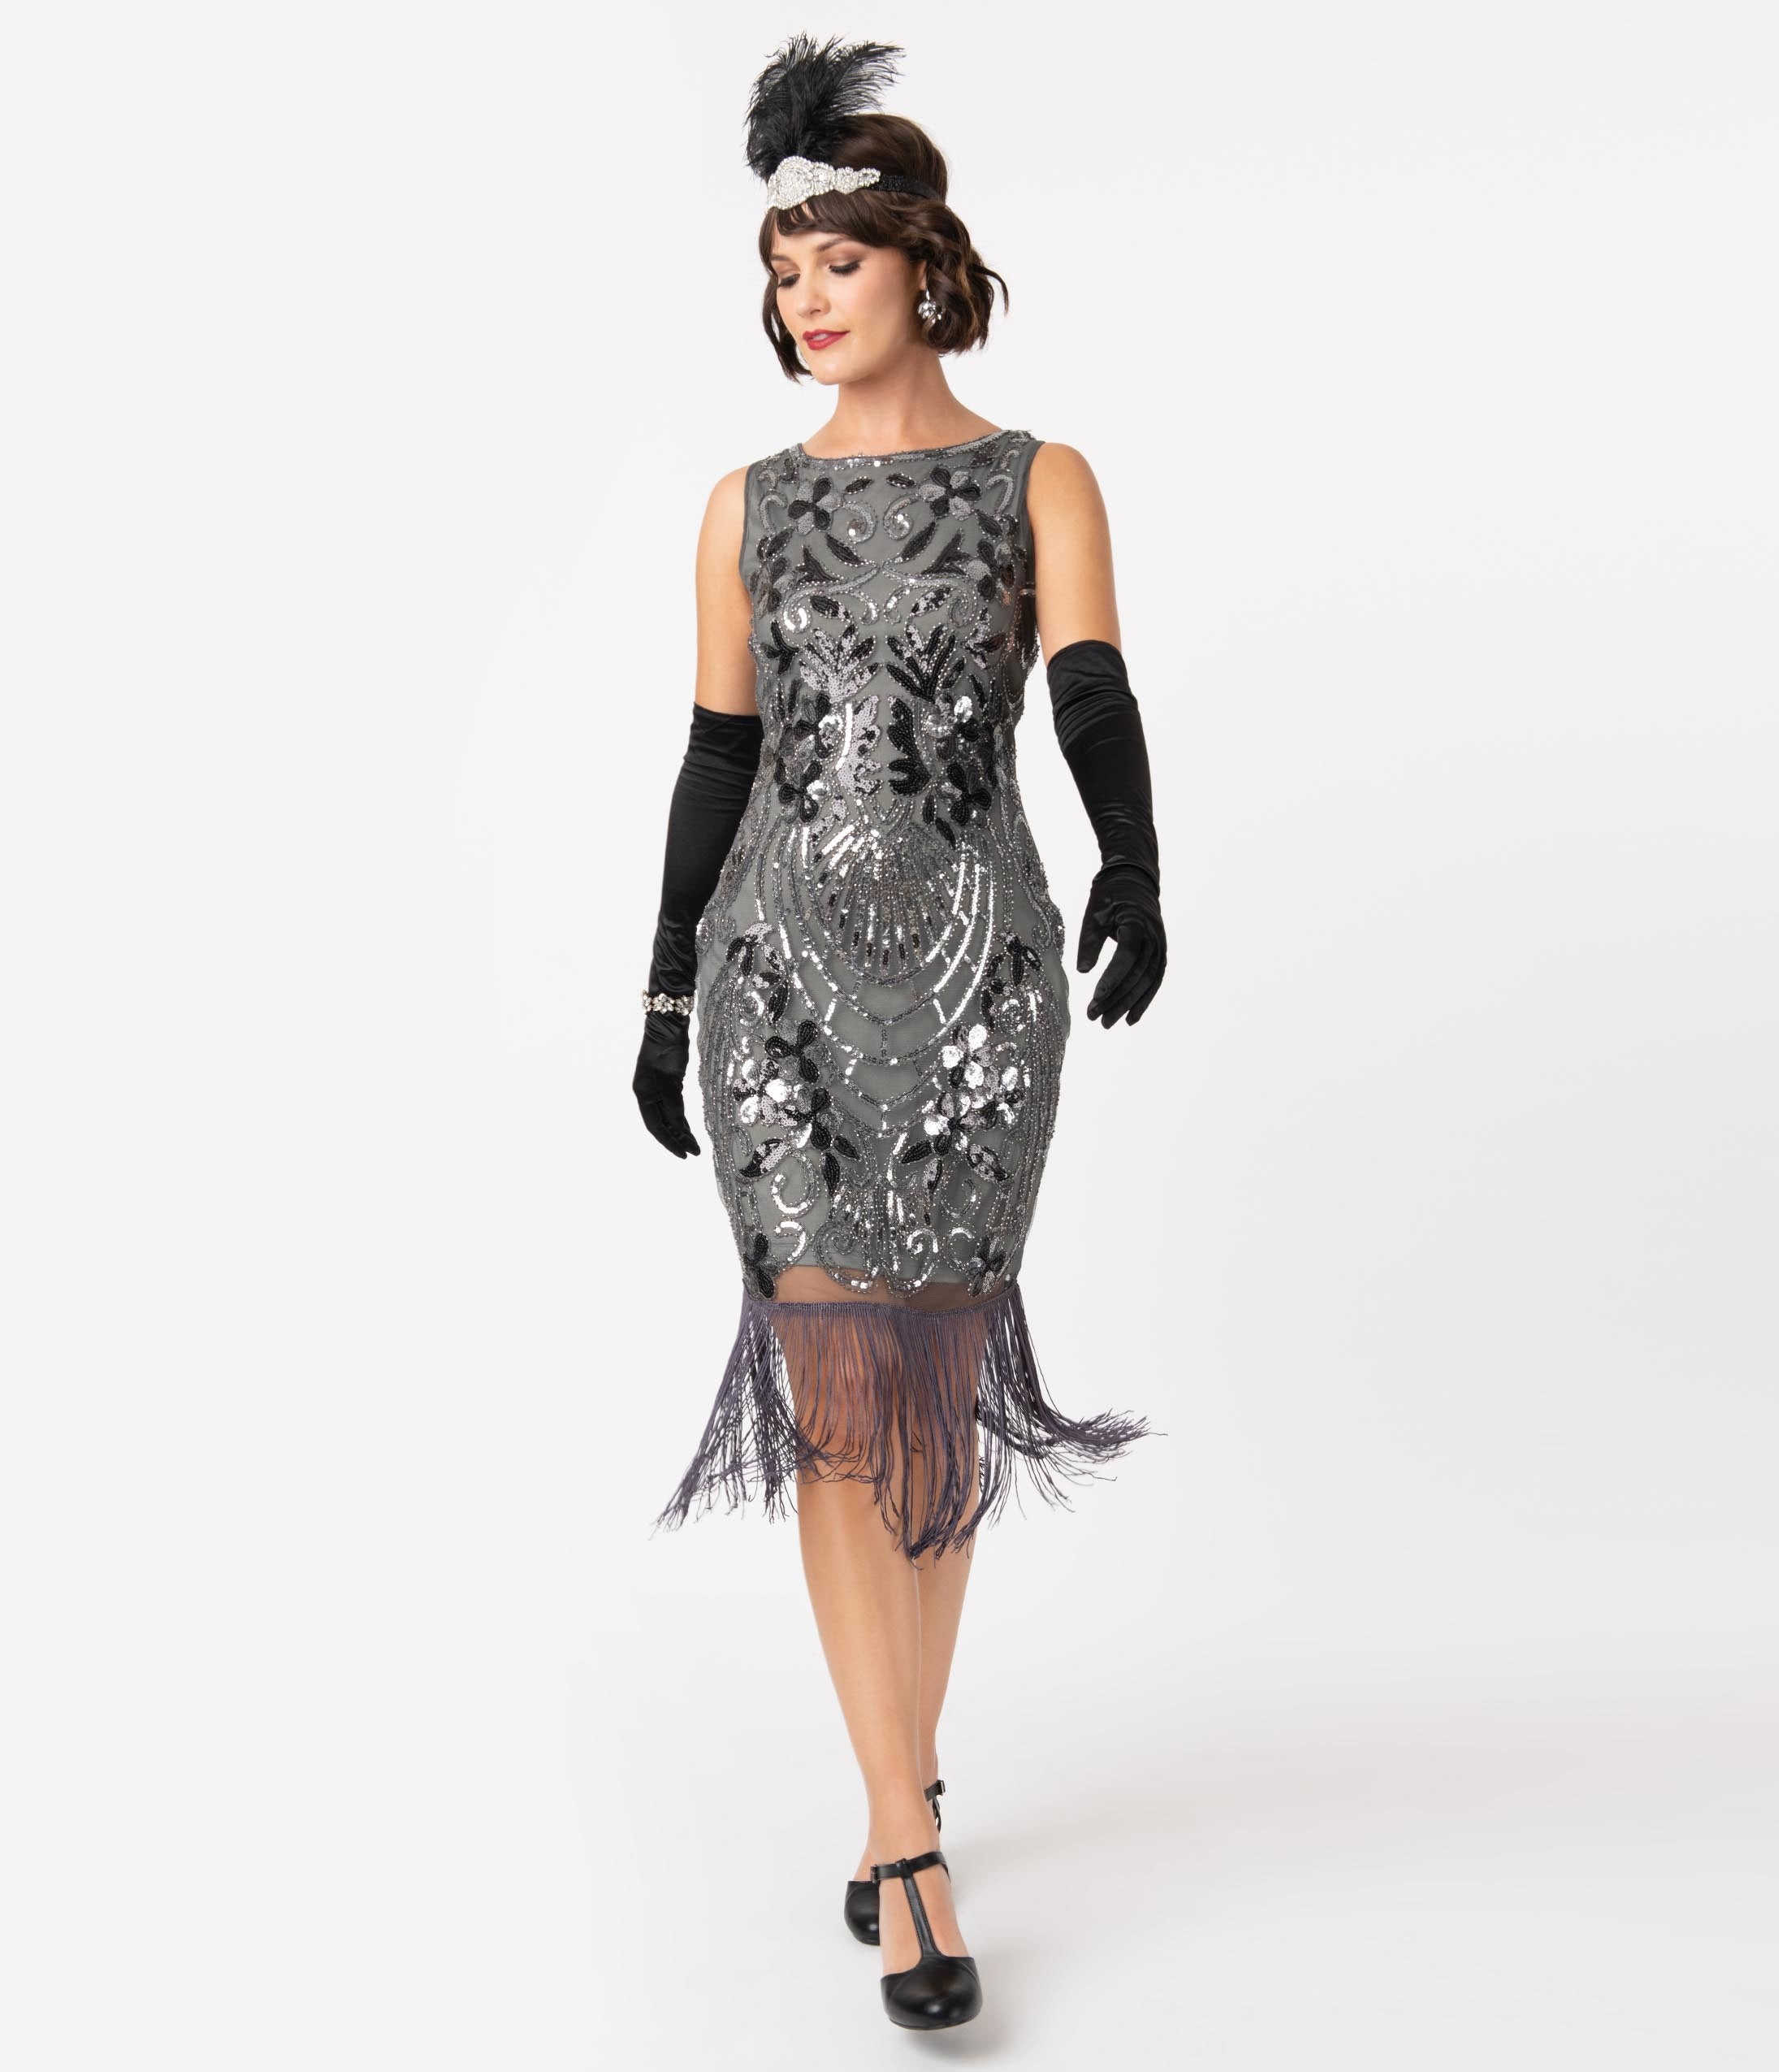 Best 1920s Prom Dresses – Great Gatsby Style Gowns Unique Vintage Charcoal Grey Sequin Alix Fringe Flapper Dress $98.00 AT vintagedancer.com